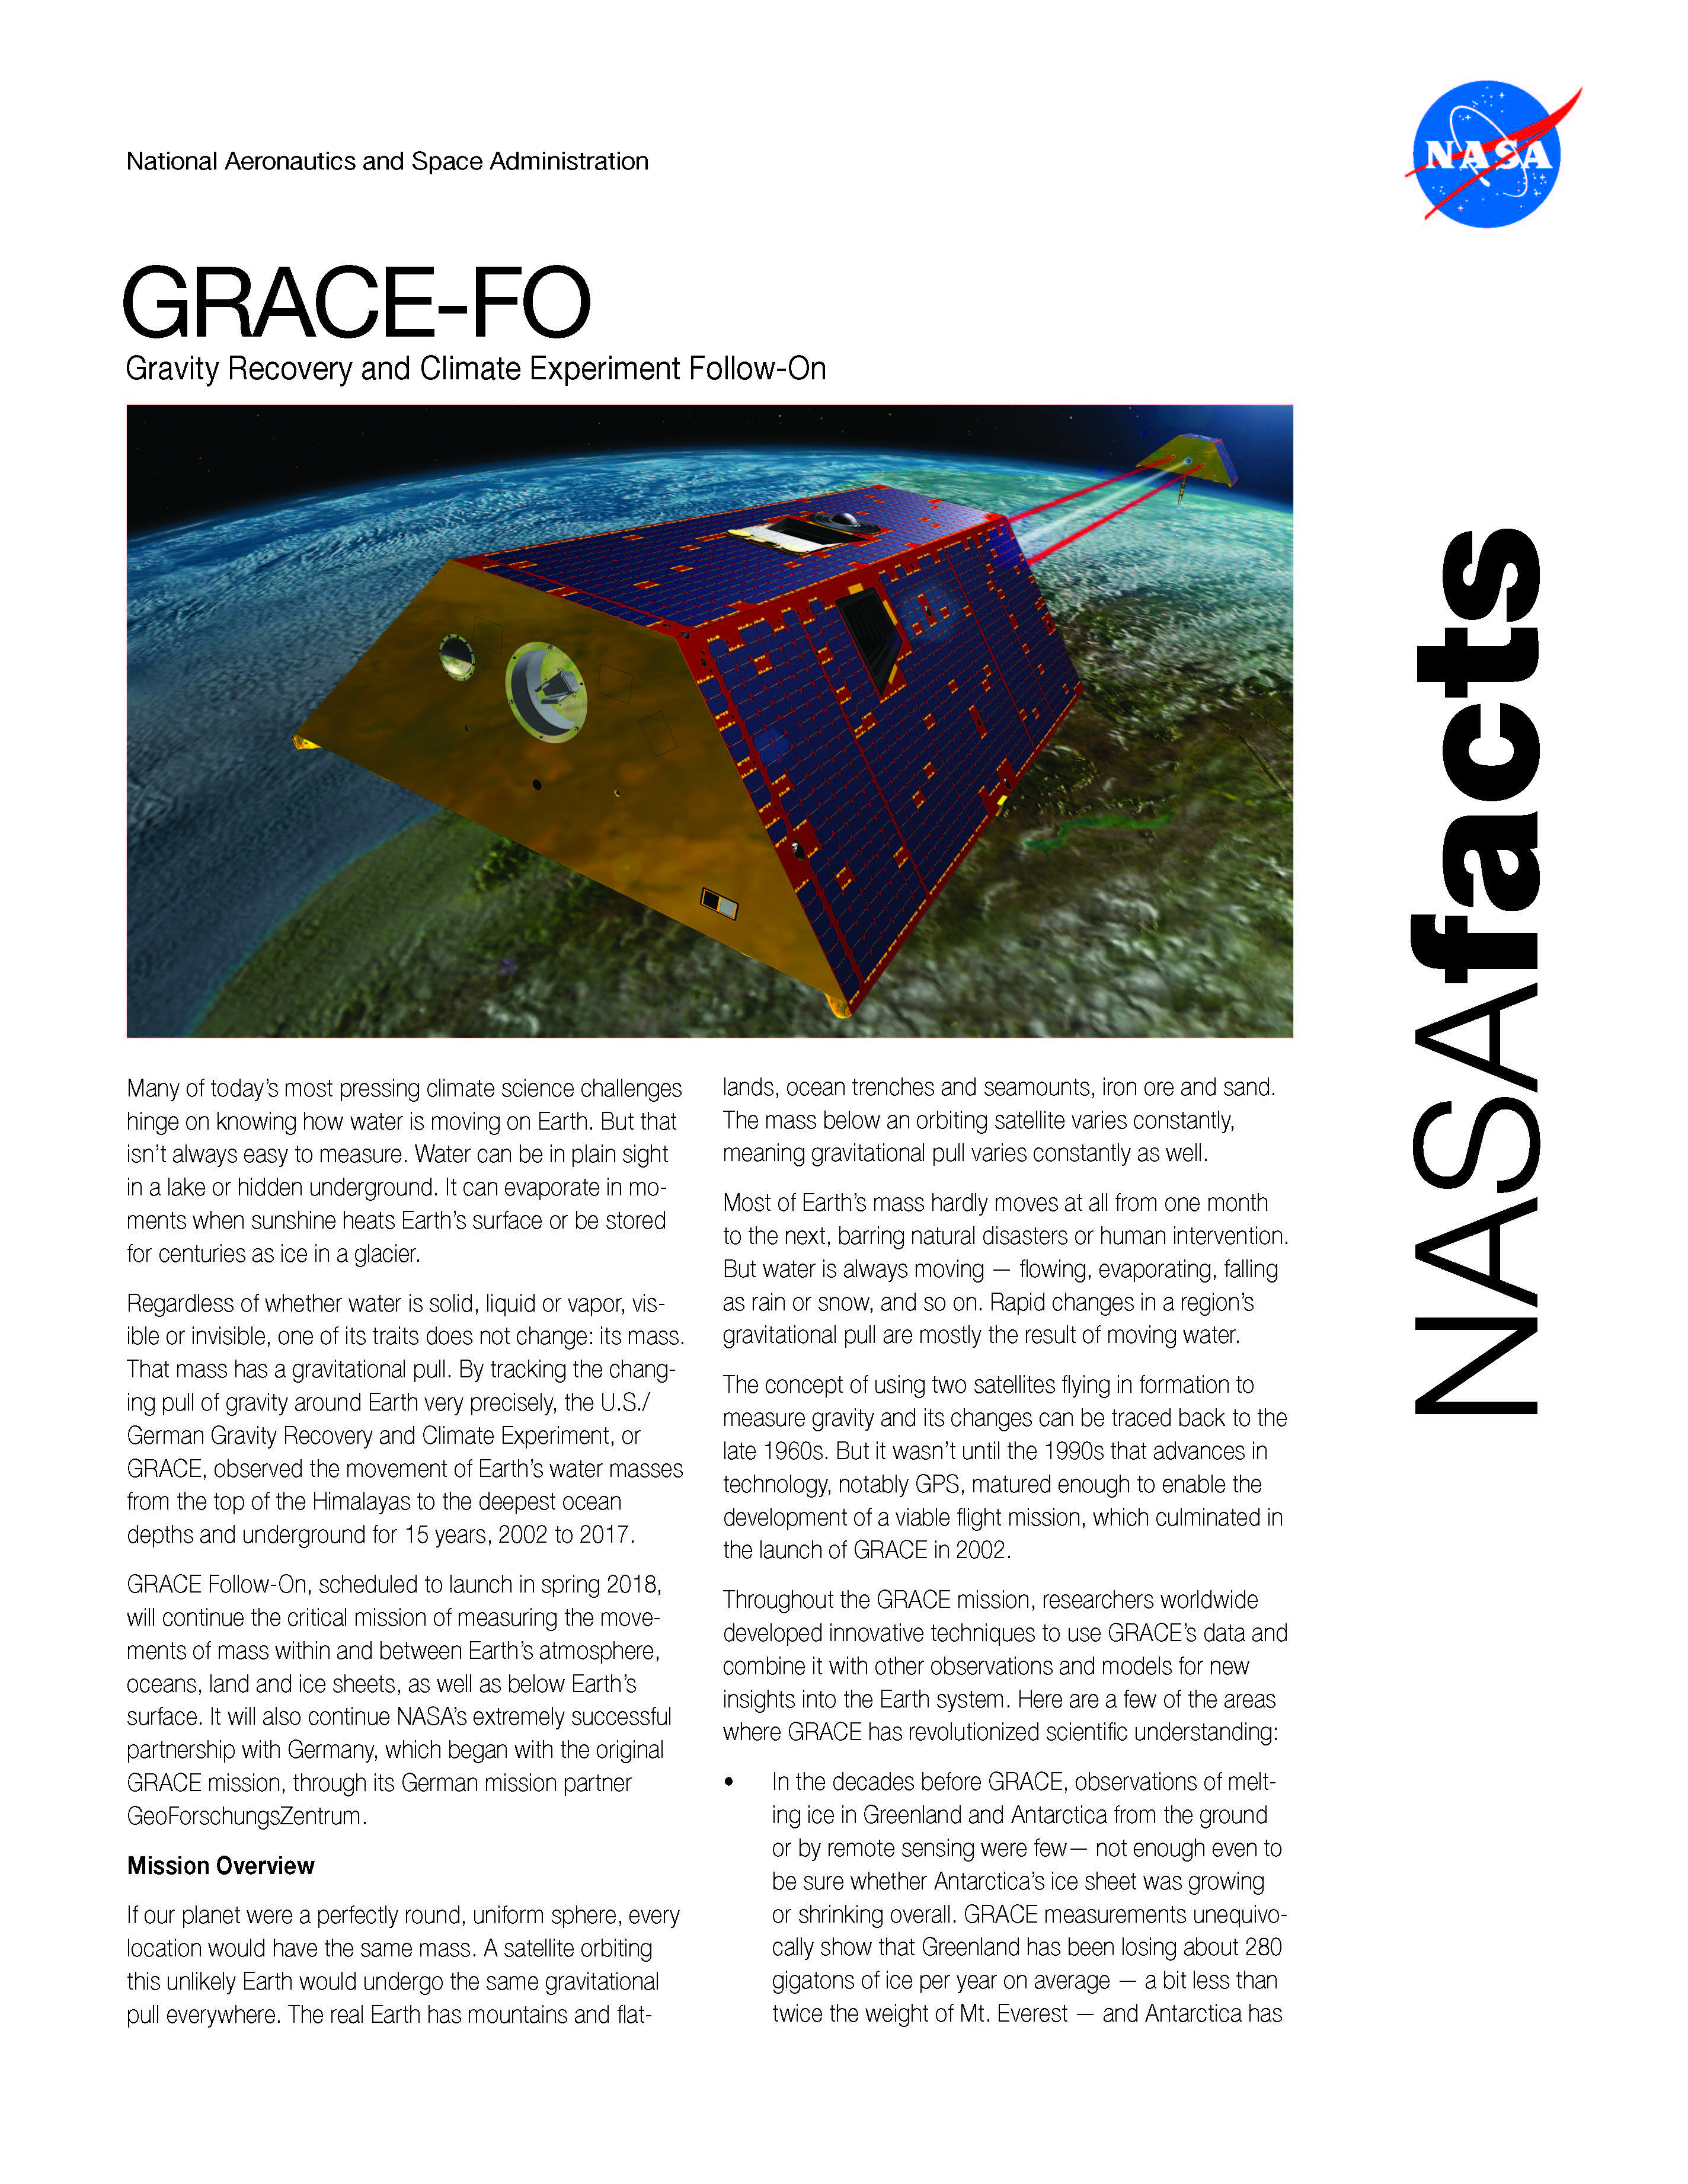 GRACE-FO Fact Sheet